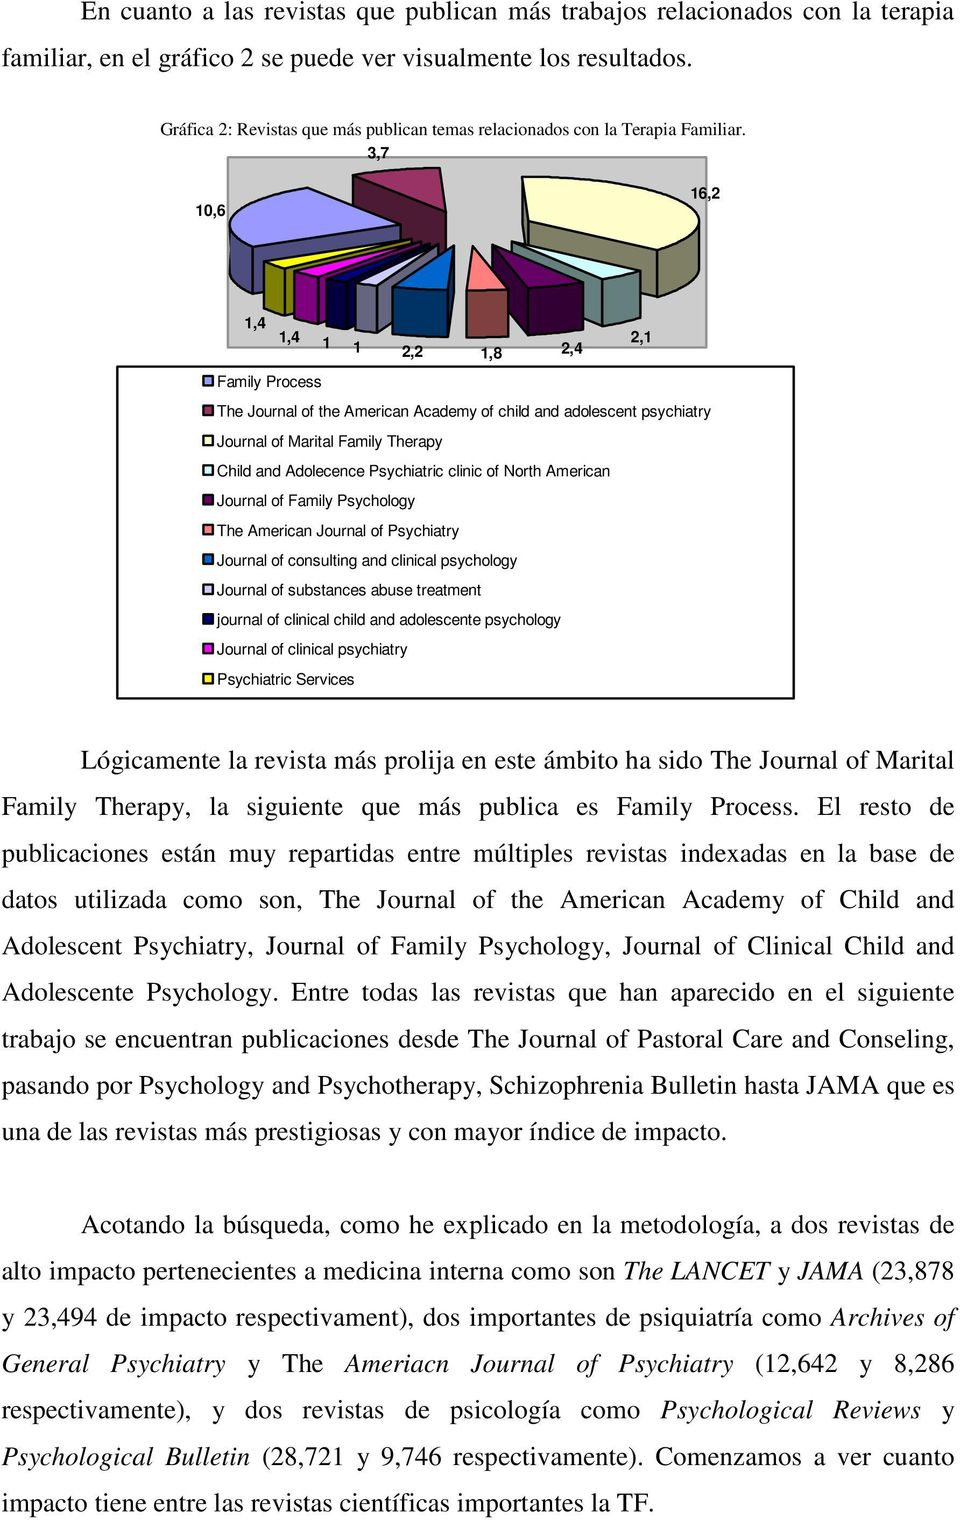 3,7 10,6 16,2 1,4 1,4 1 1 2,2 1,8 2,4 2,1 Family Process The Journal of the American Academy of child and adolescent psychiatry Journal of Marital Family Therapy Child and Adolecence Psychiatric